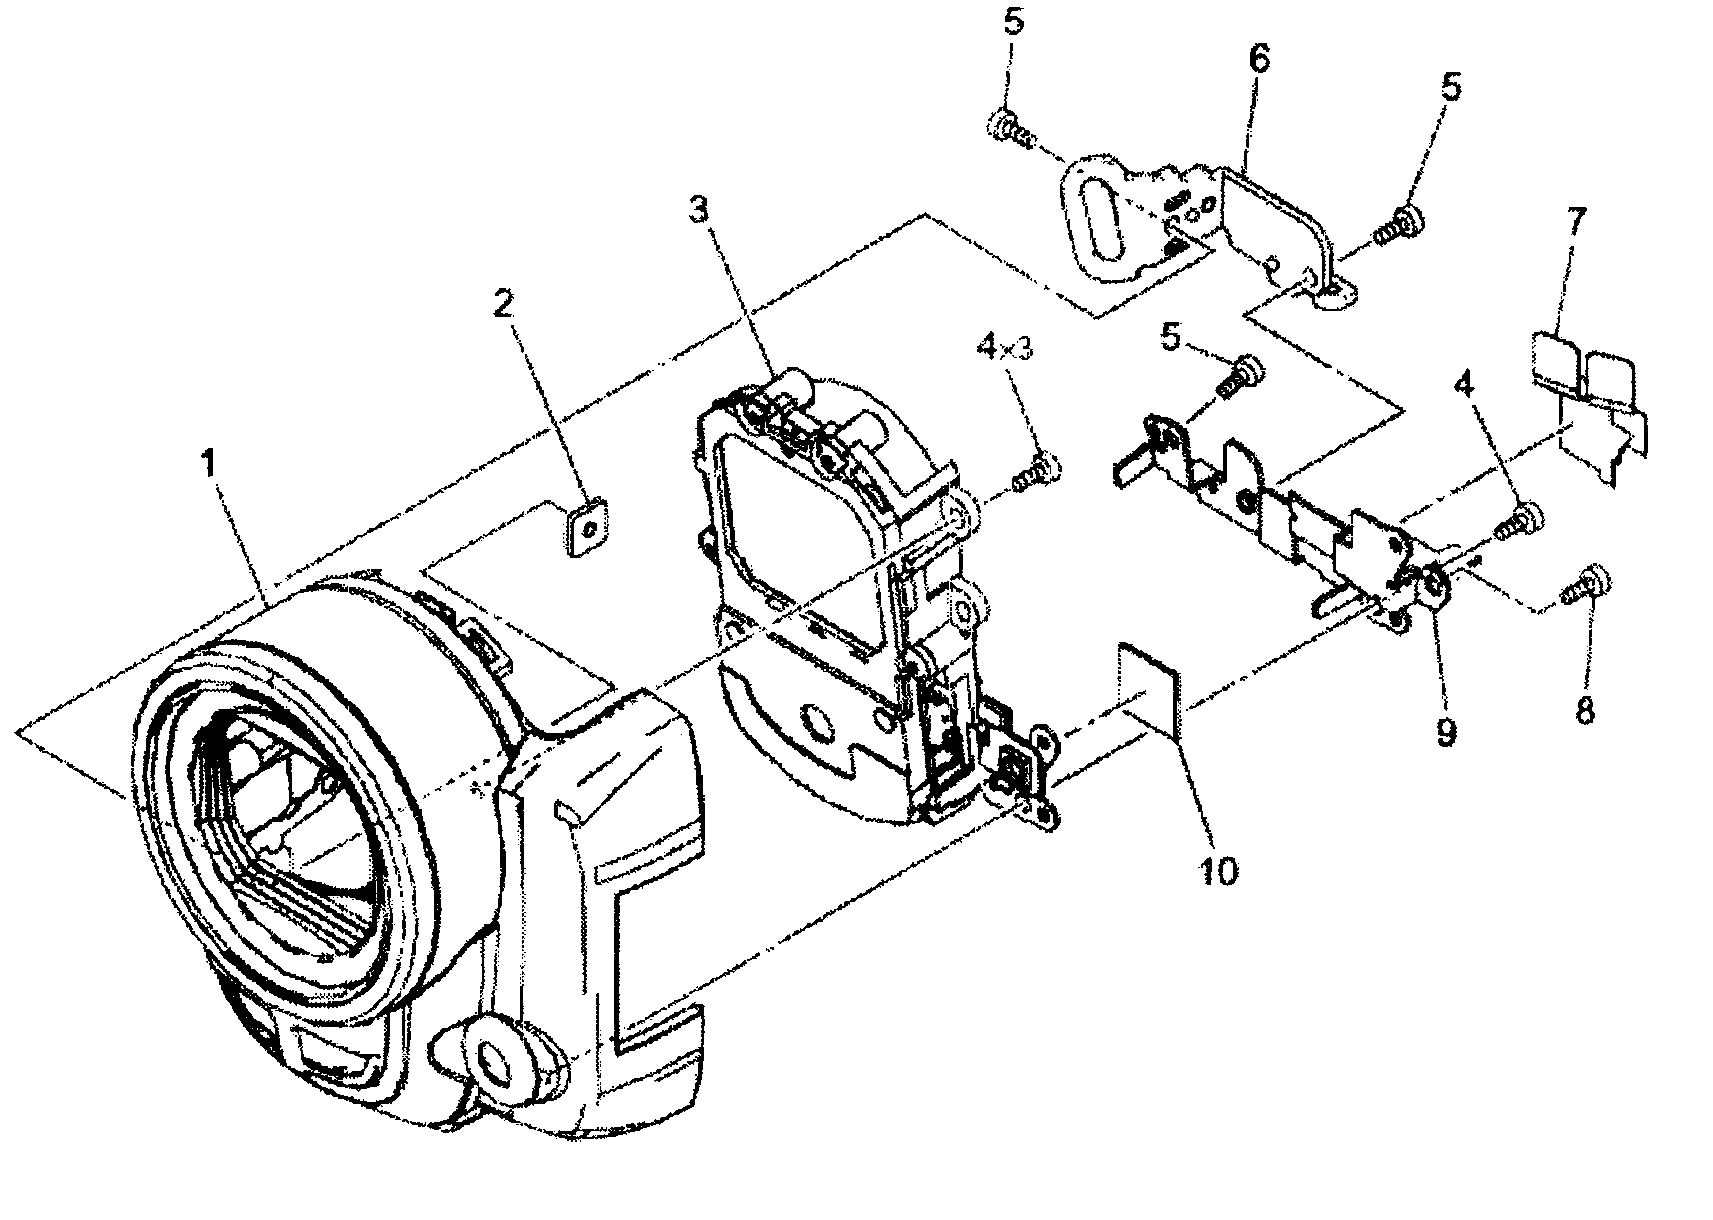 Canon Lens Diagram, Canon, Free Engine Image For User